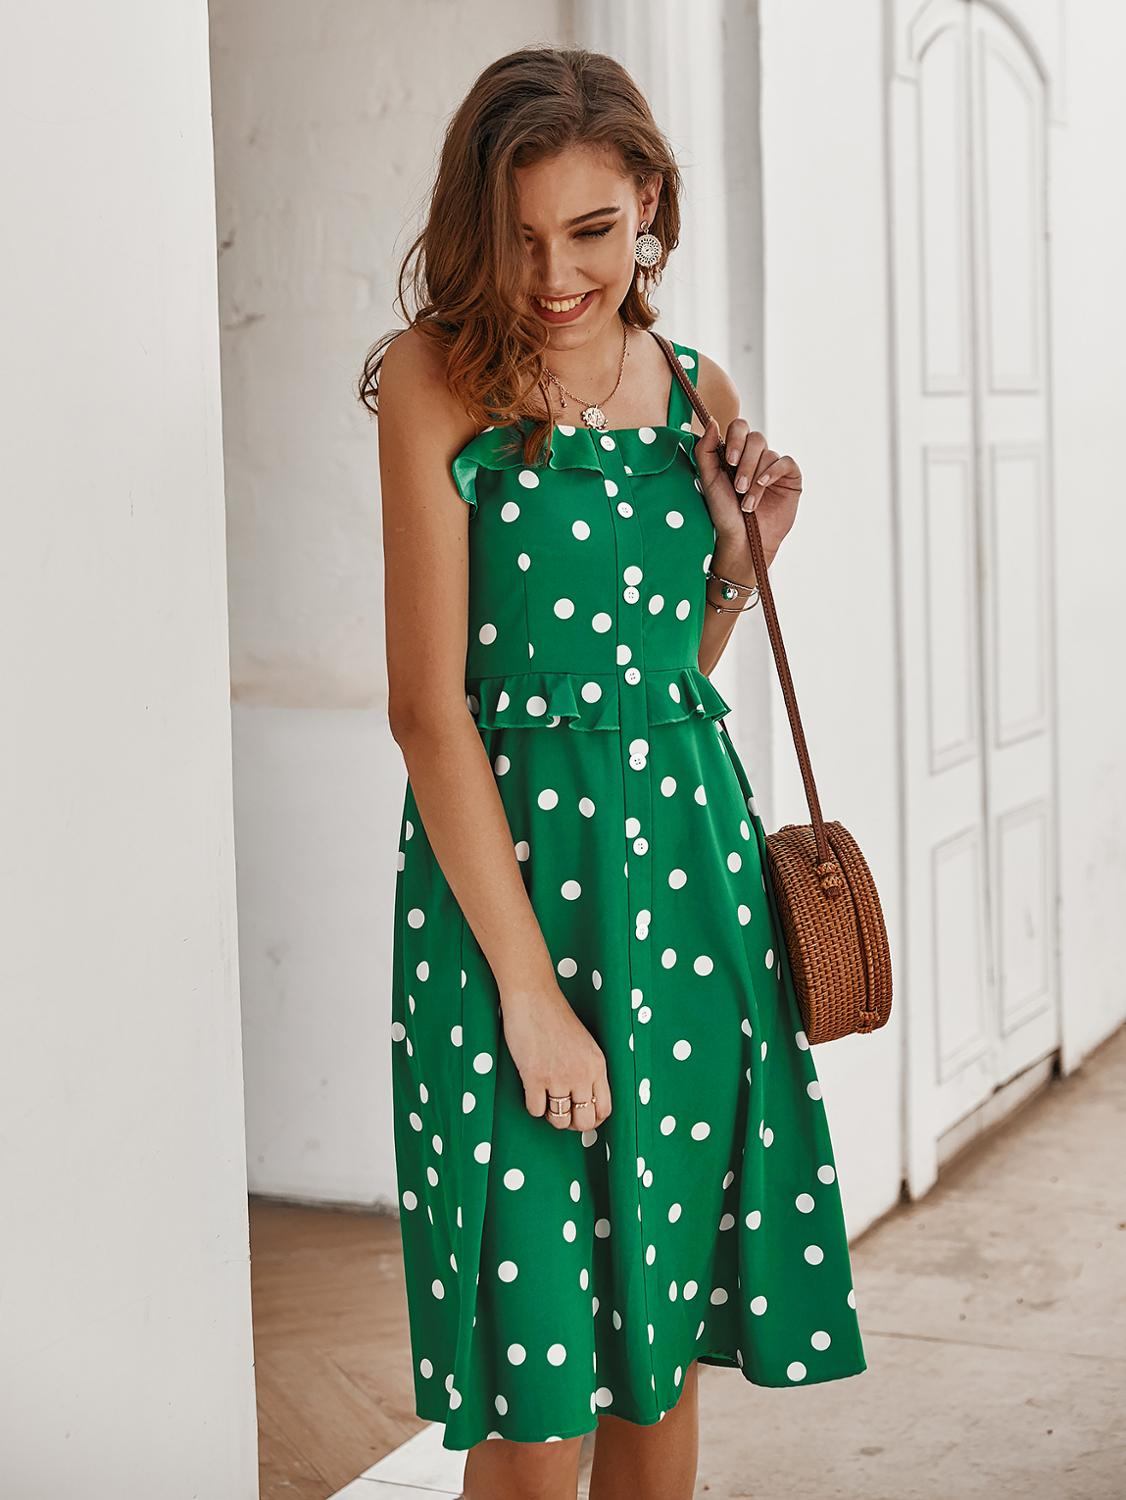 2020 Spring Summer New <font><b>dress</b></font> original design Strap Polka Dot Lightly Cooked women <font><b>dress</b></font> image